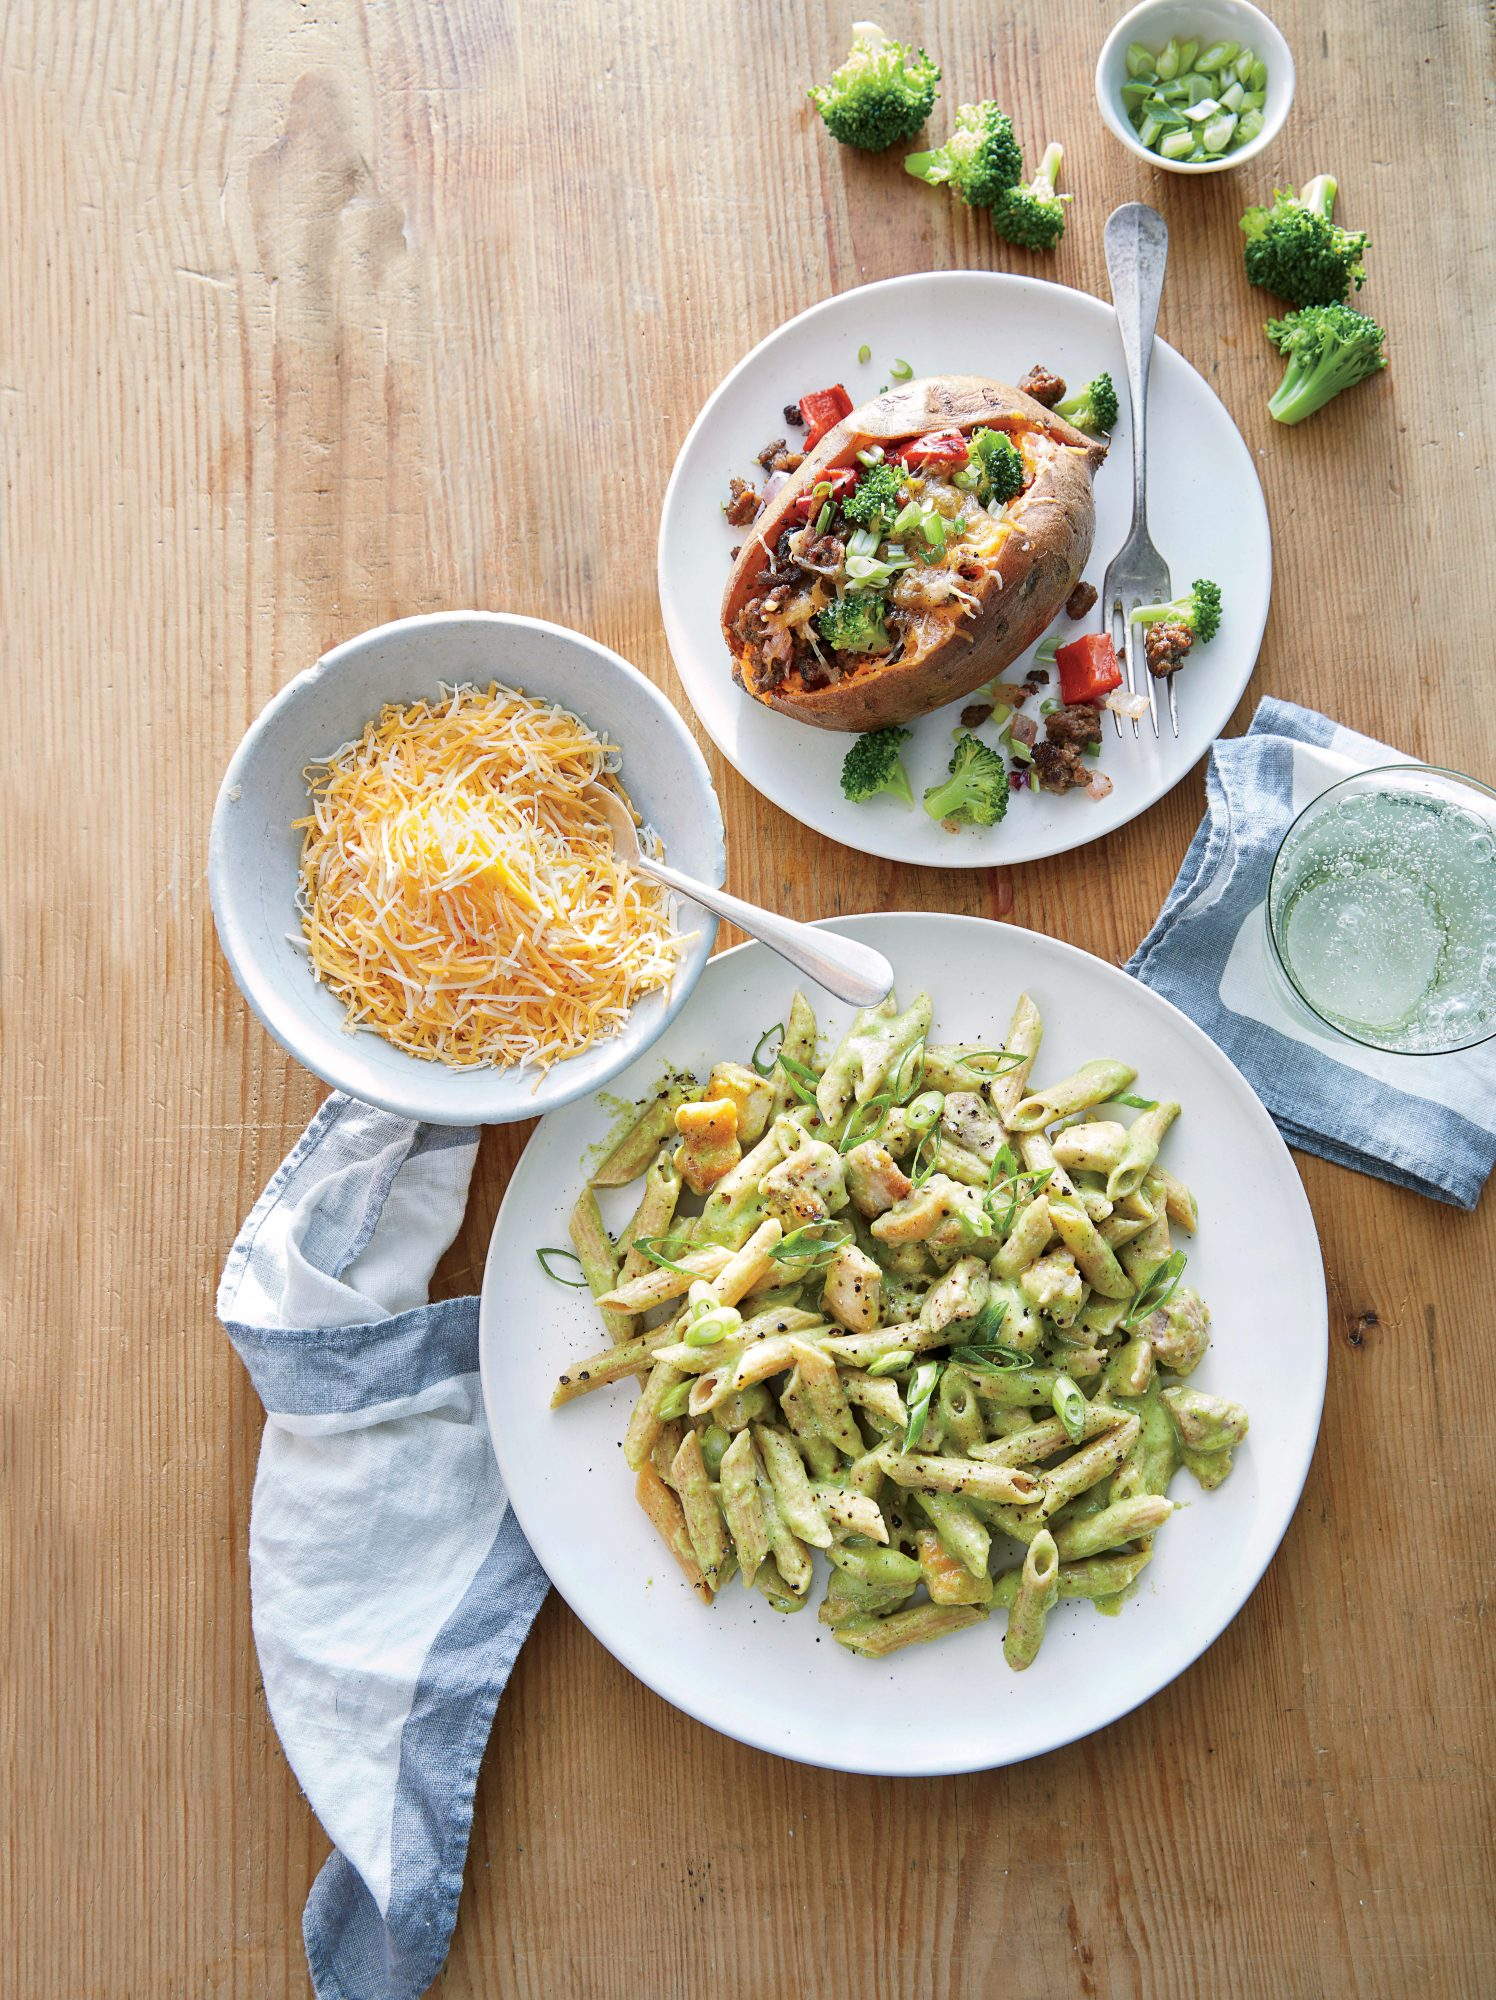 Broccoli and Cheddar Chicken Pasta image